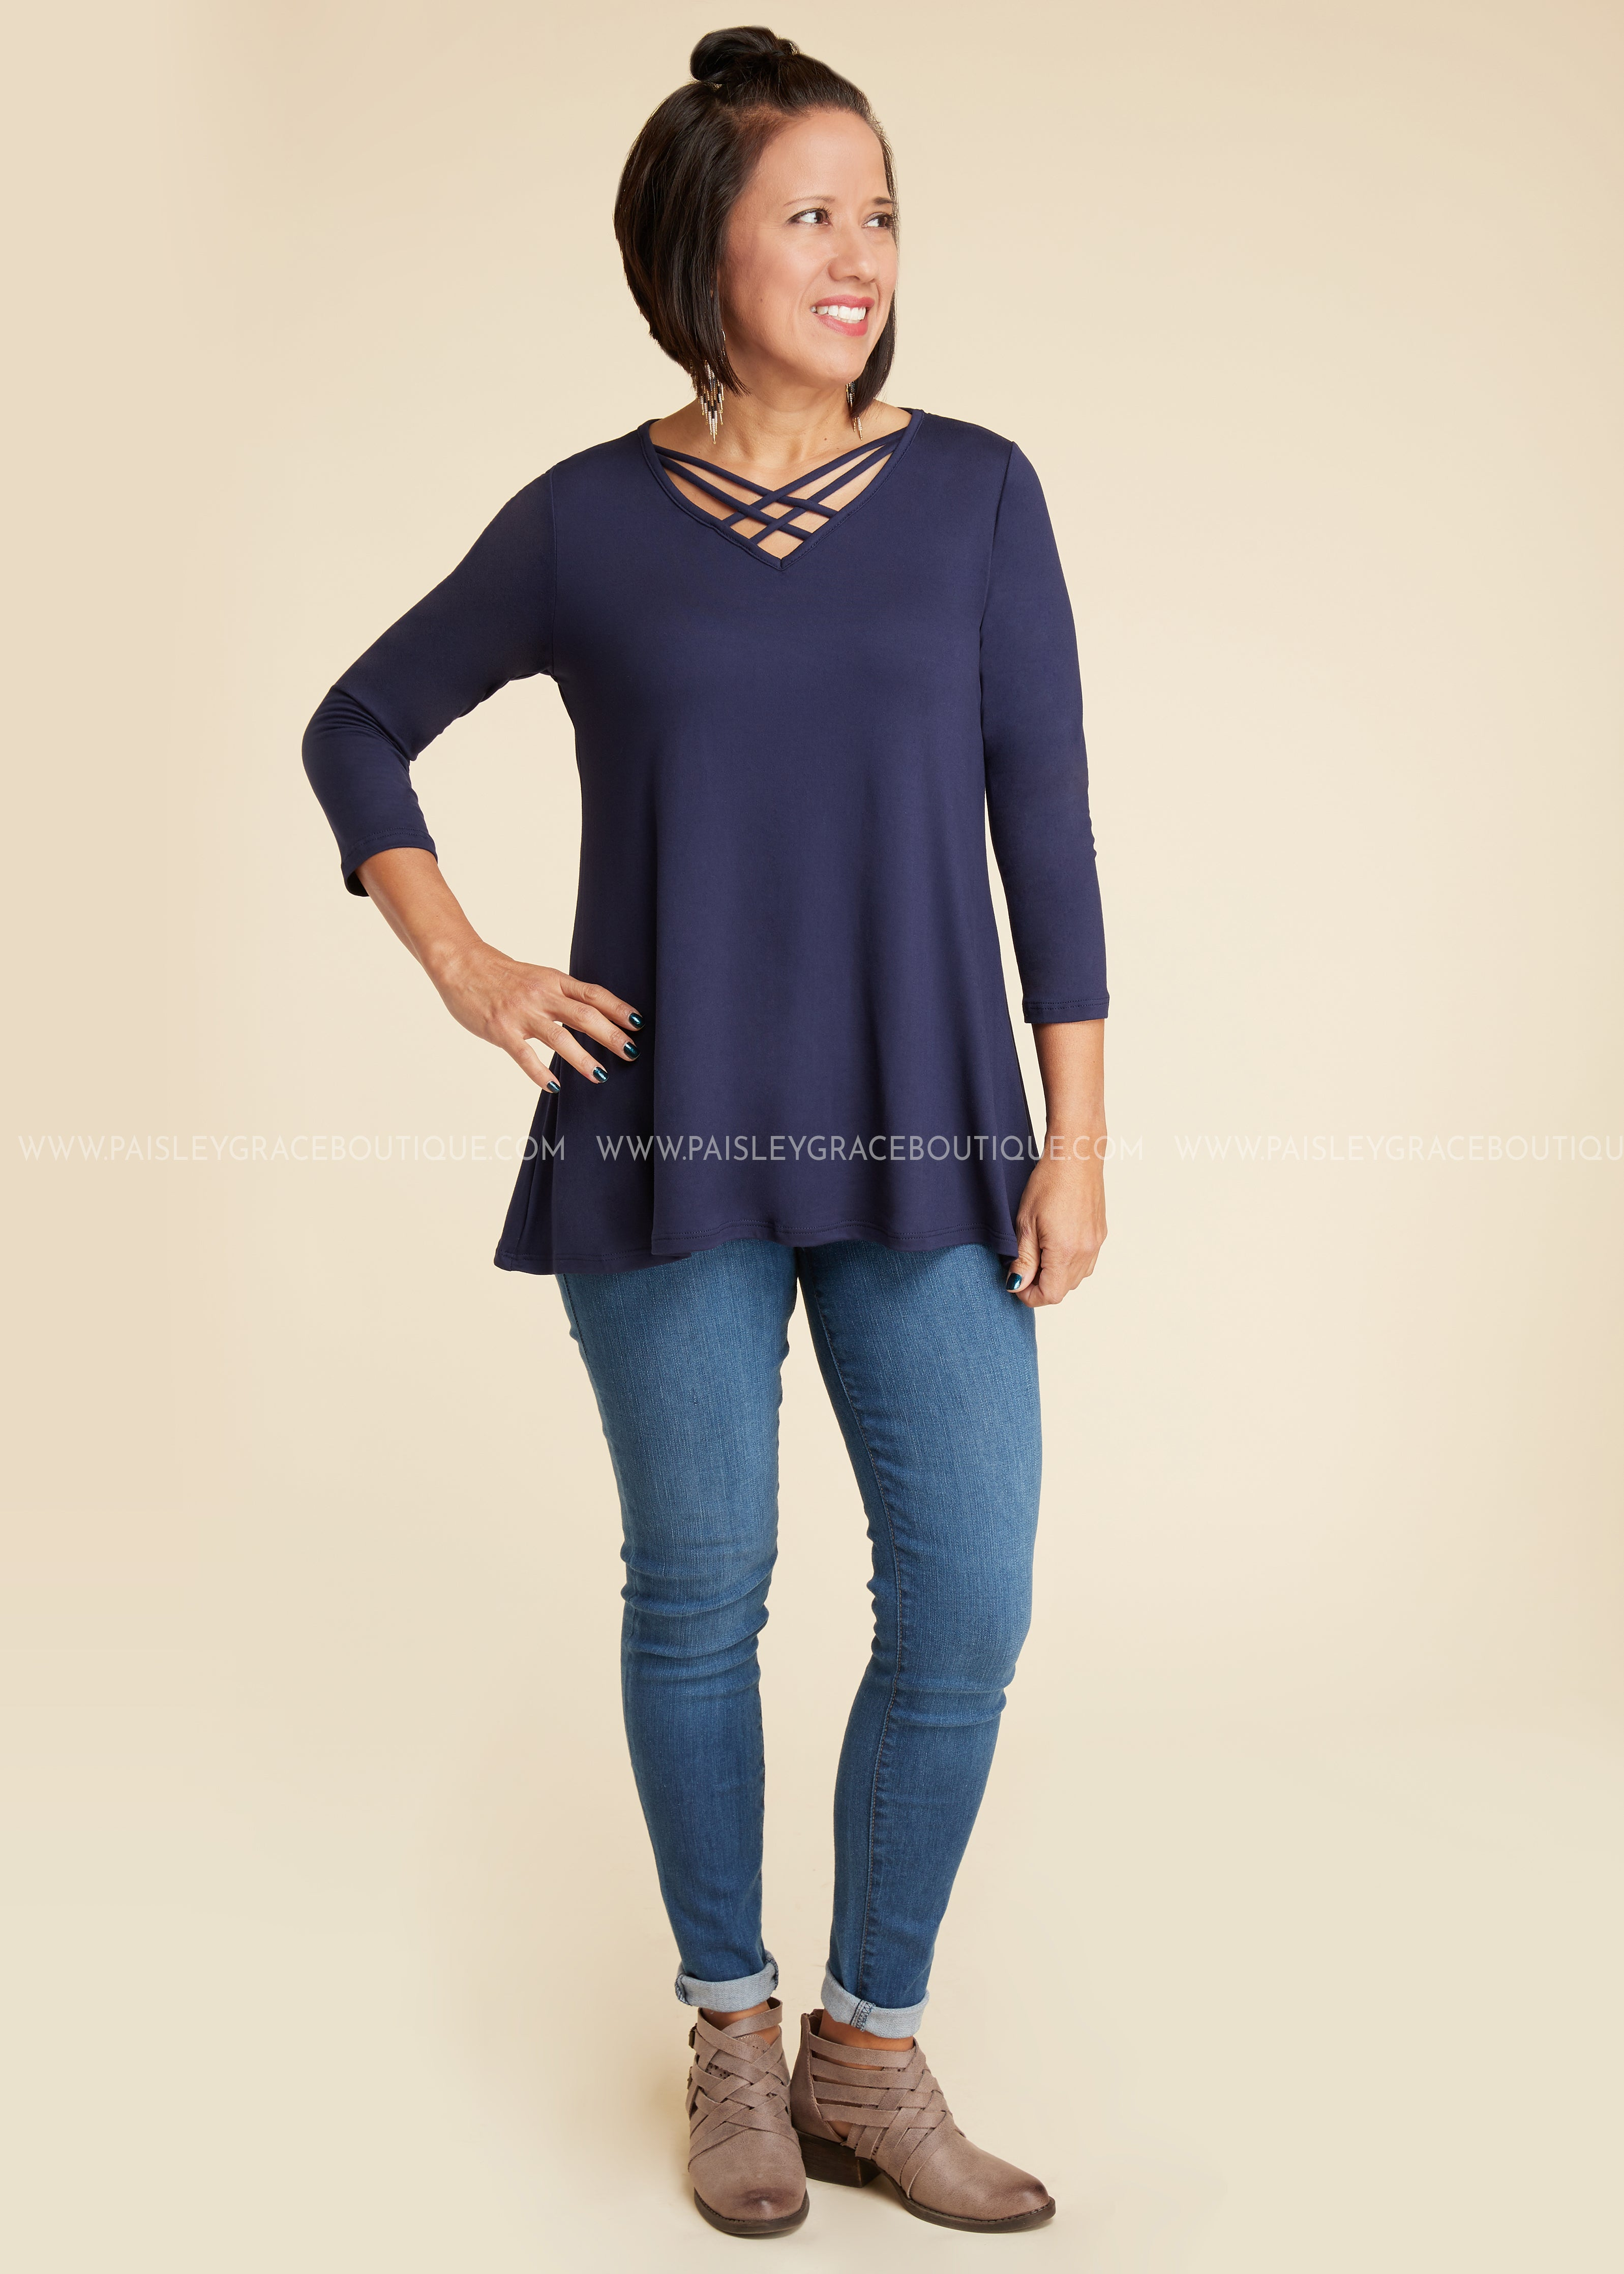 Kinley Top- NAVY- RESTOCK